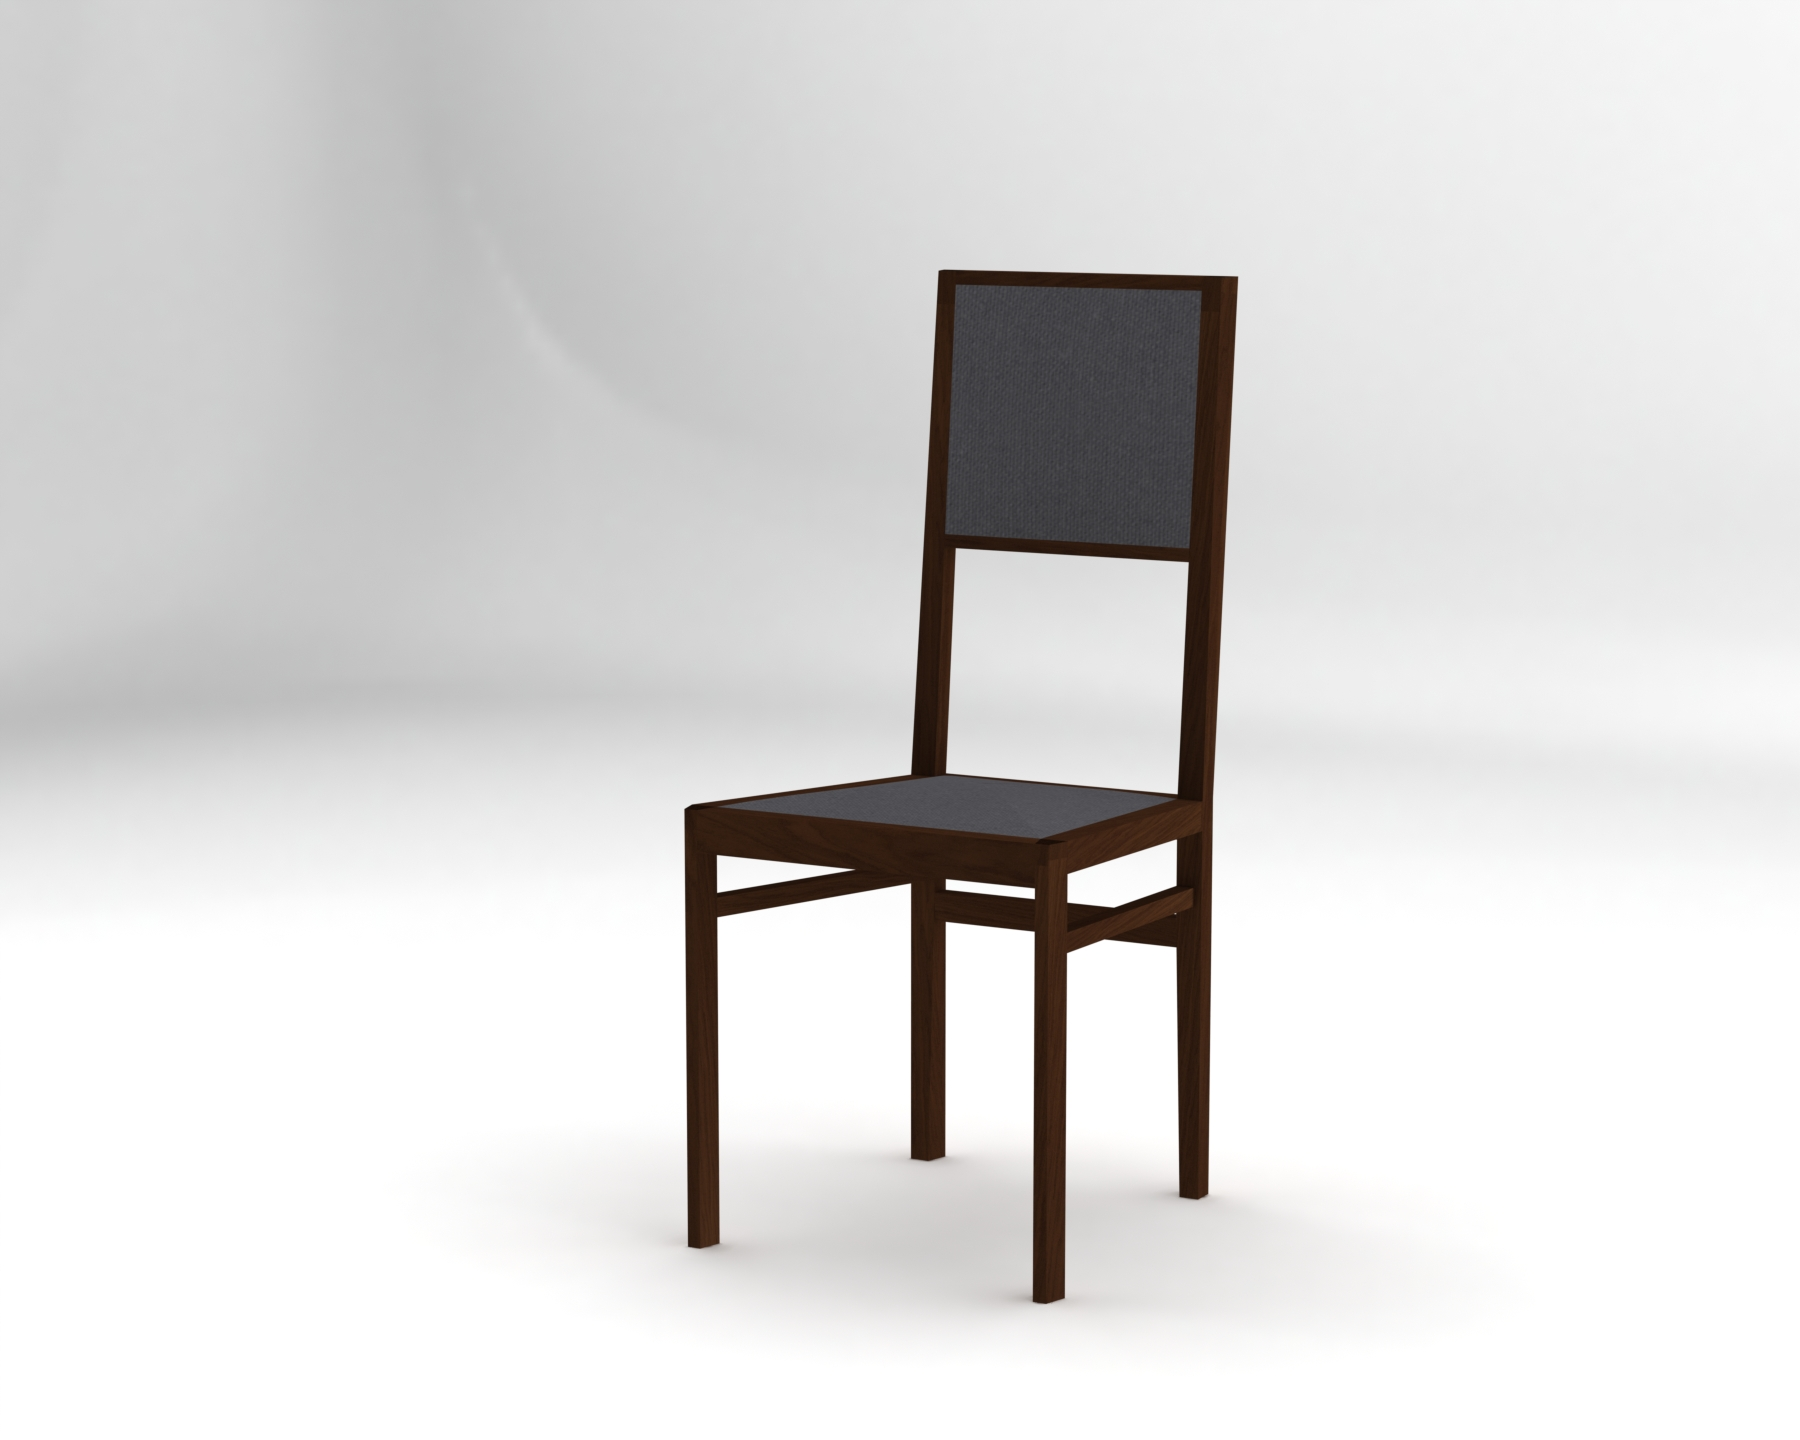 chair_02_perspective.JPG